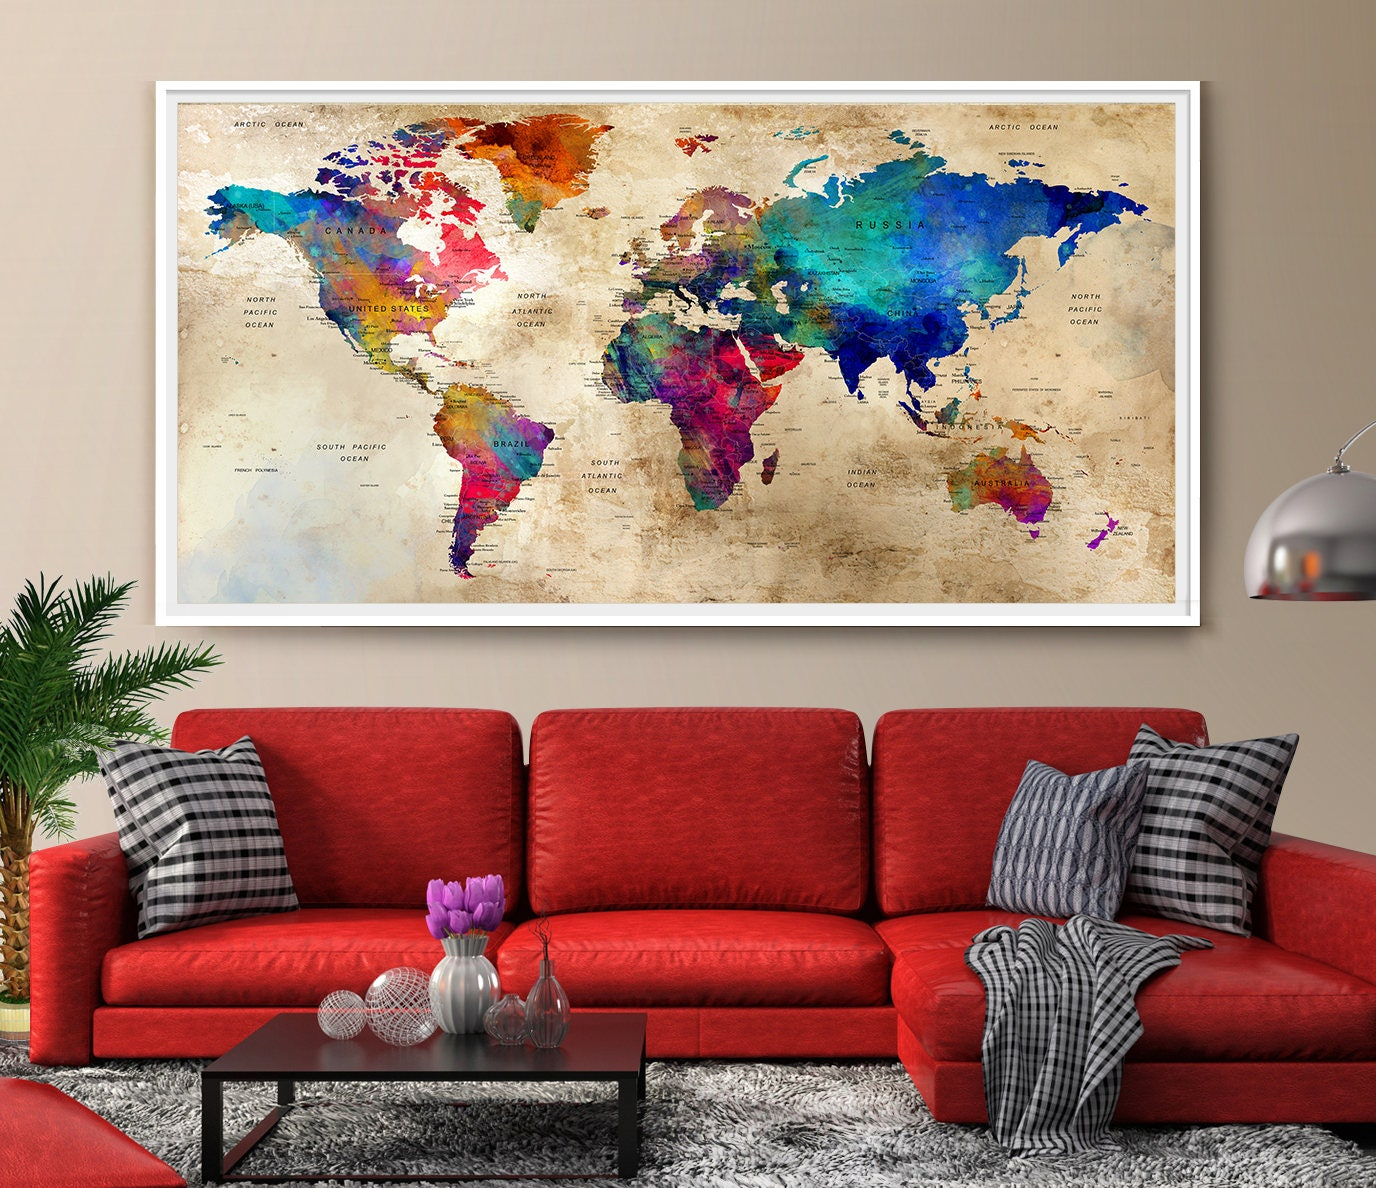 Exceptionnel Description. Large Wall Art World Map, Colorful ...